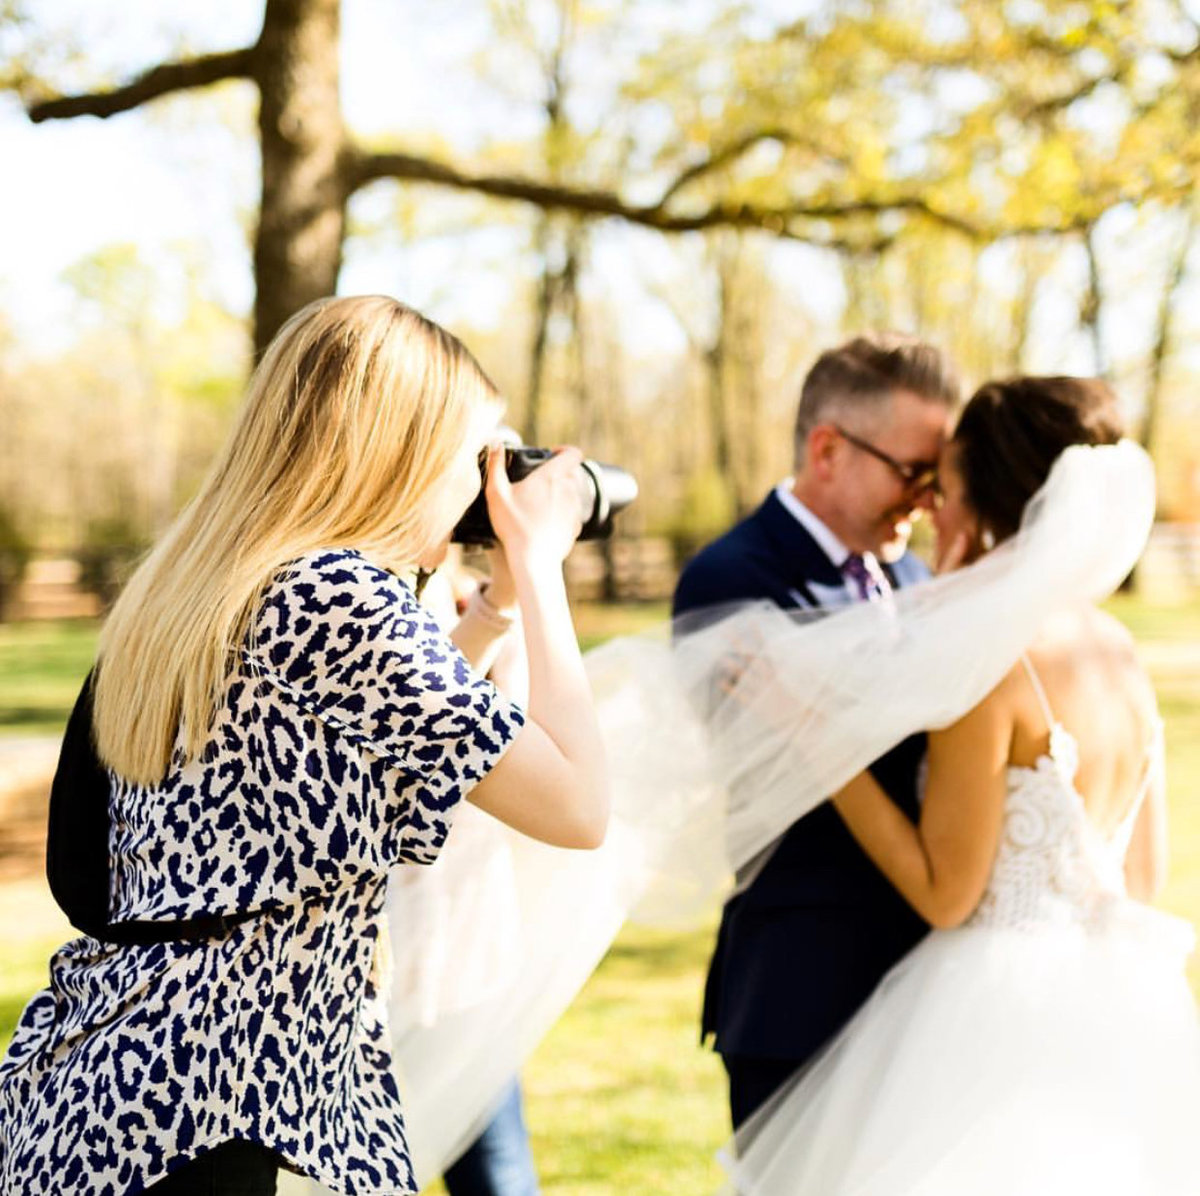 Caitlin and Luke Photography Wedding Engagement Luxury Illinois Destination Colorful Bright Joyful Cheerful Photographer5